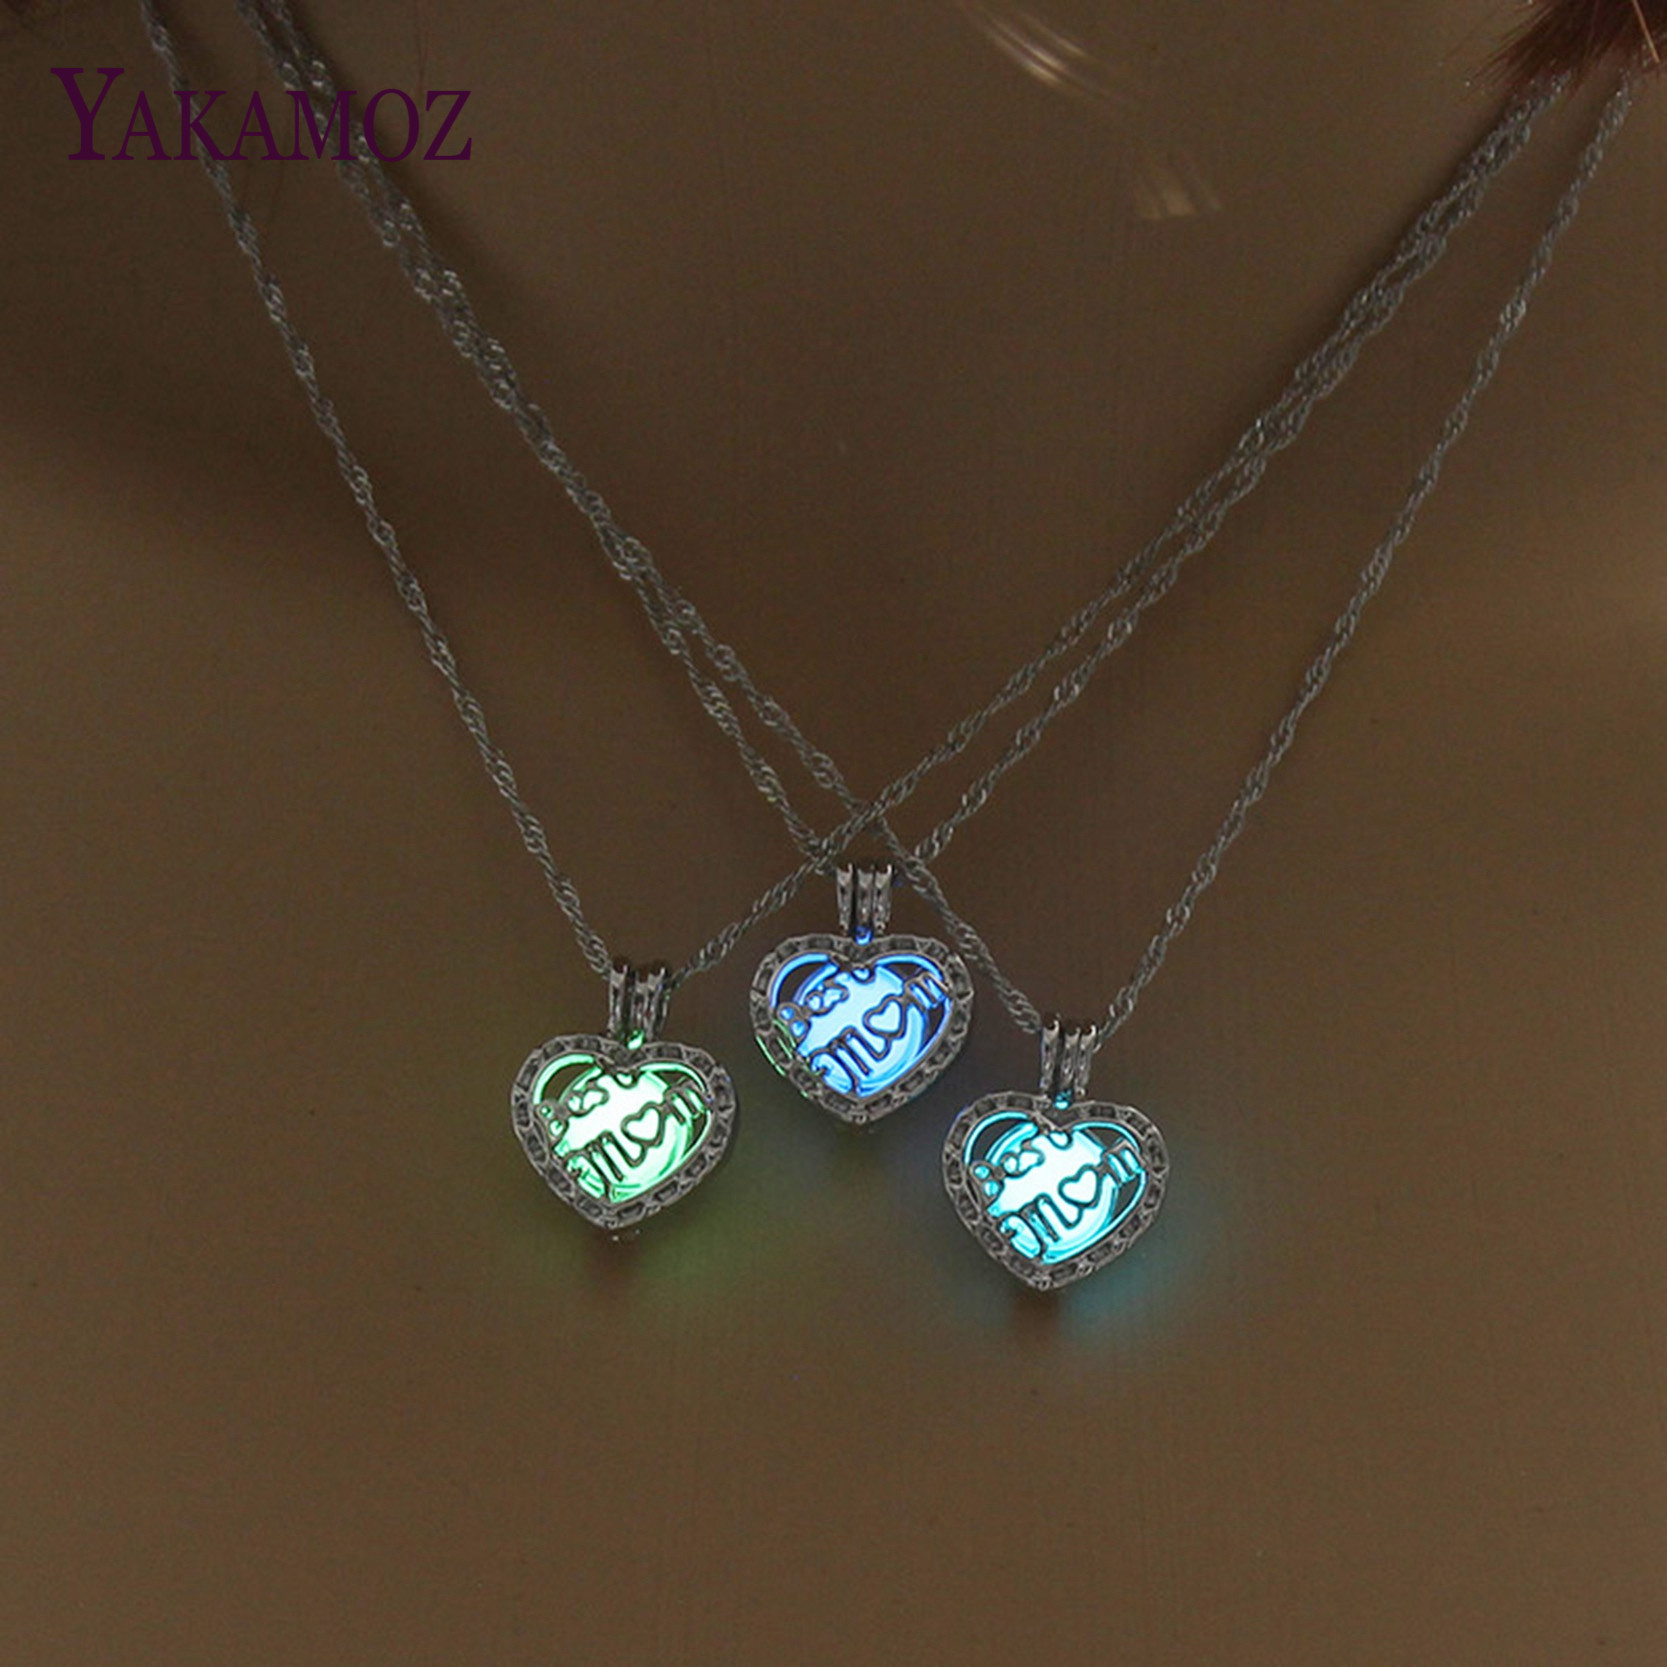 Wholesale Best MOM Luminous Necklace Heart Shape Pendant Choker Glowing Necklace Women Silver Color Chain Gift For Mom Jewelry